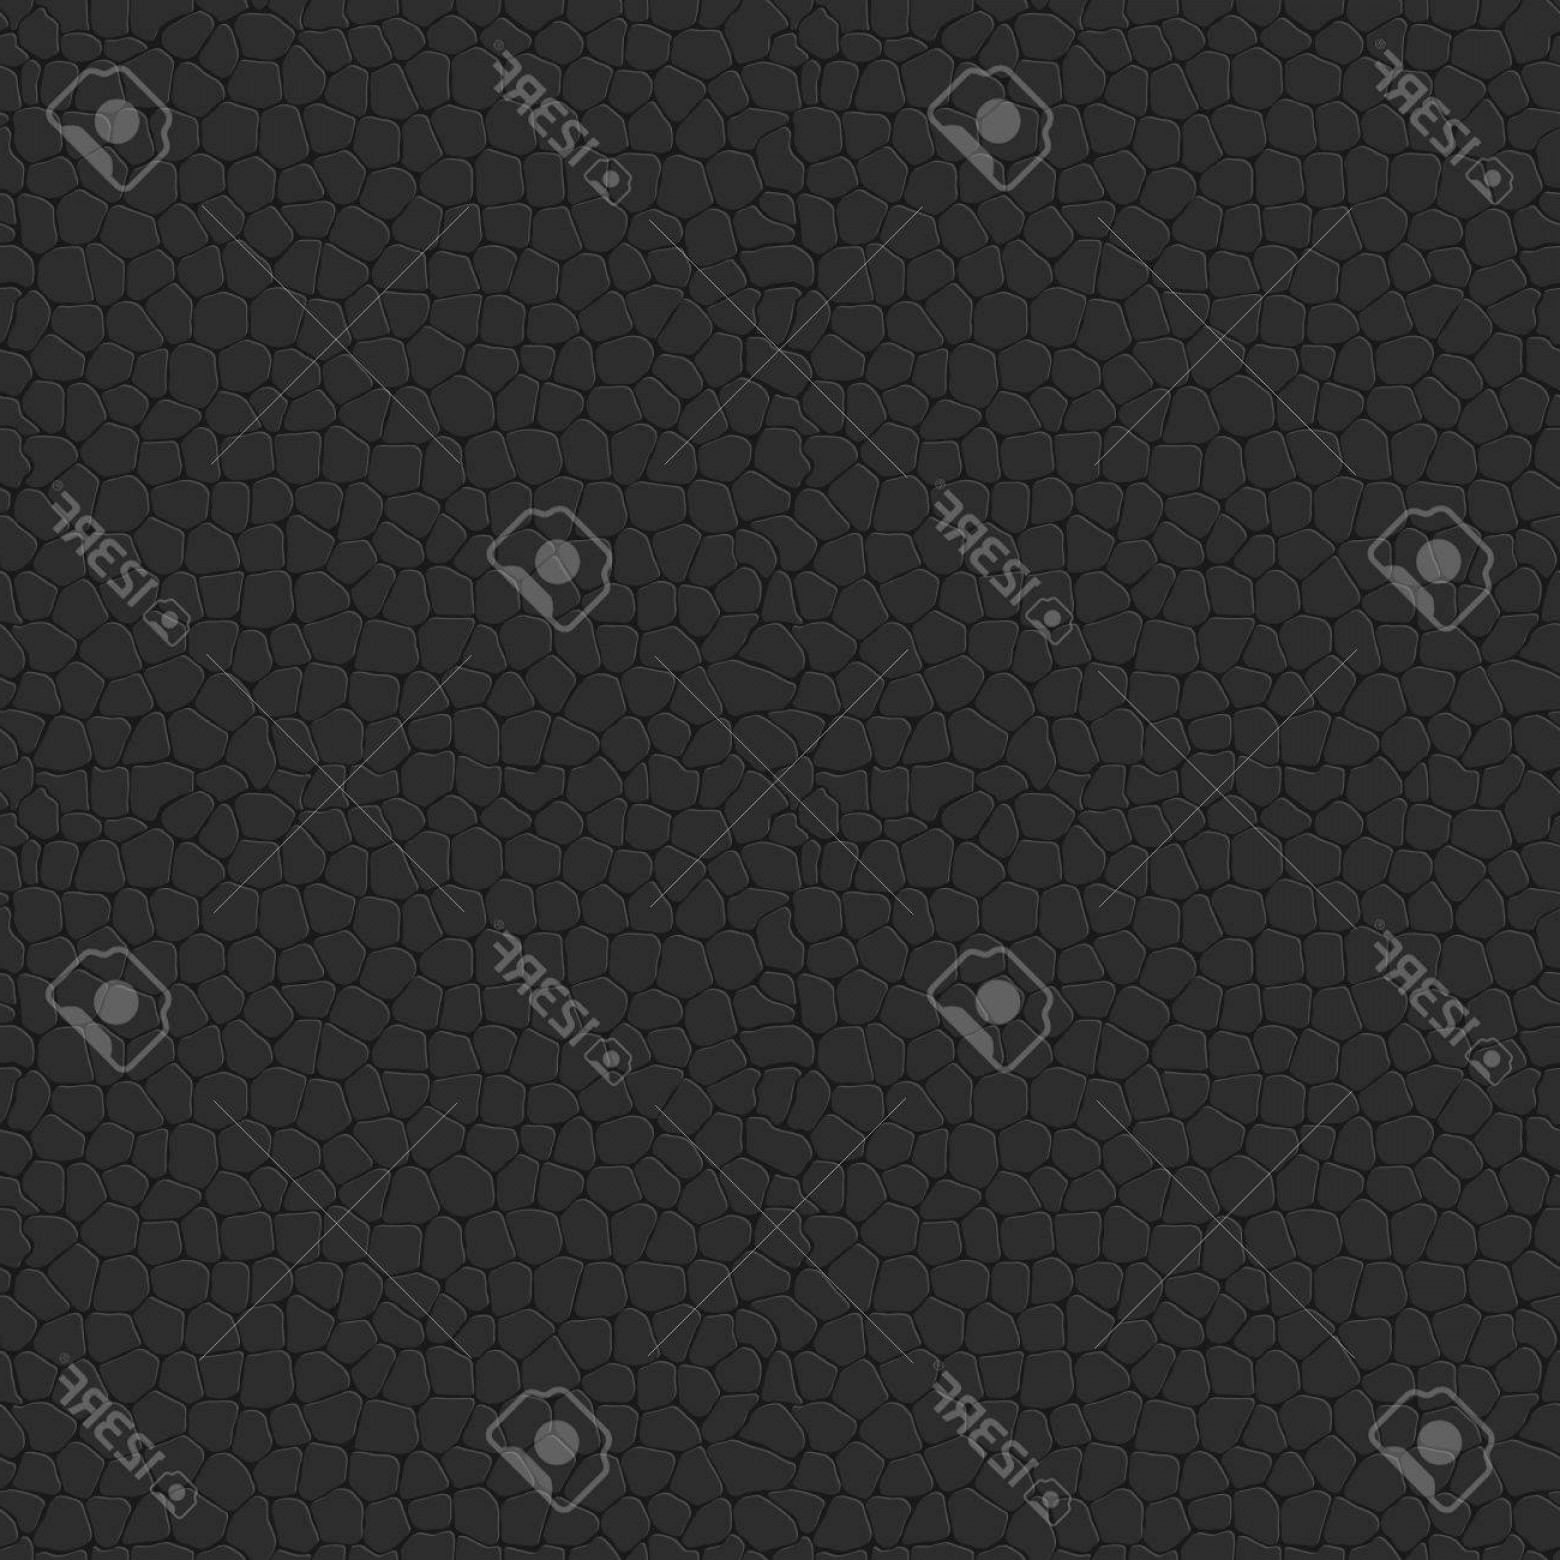 Vector Seamless Leather Pattern: Photoseamless Leather Texture Black Leather Tiled Pattern